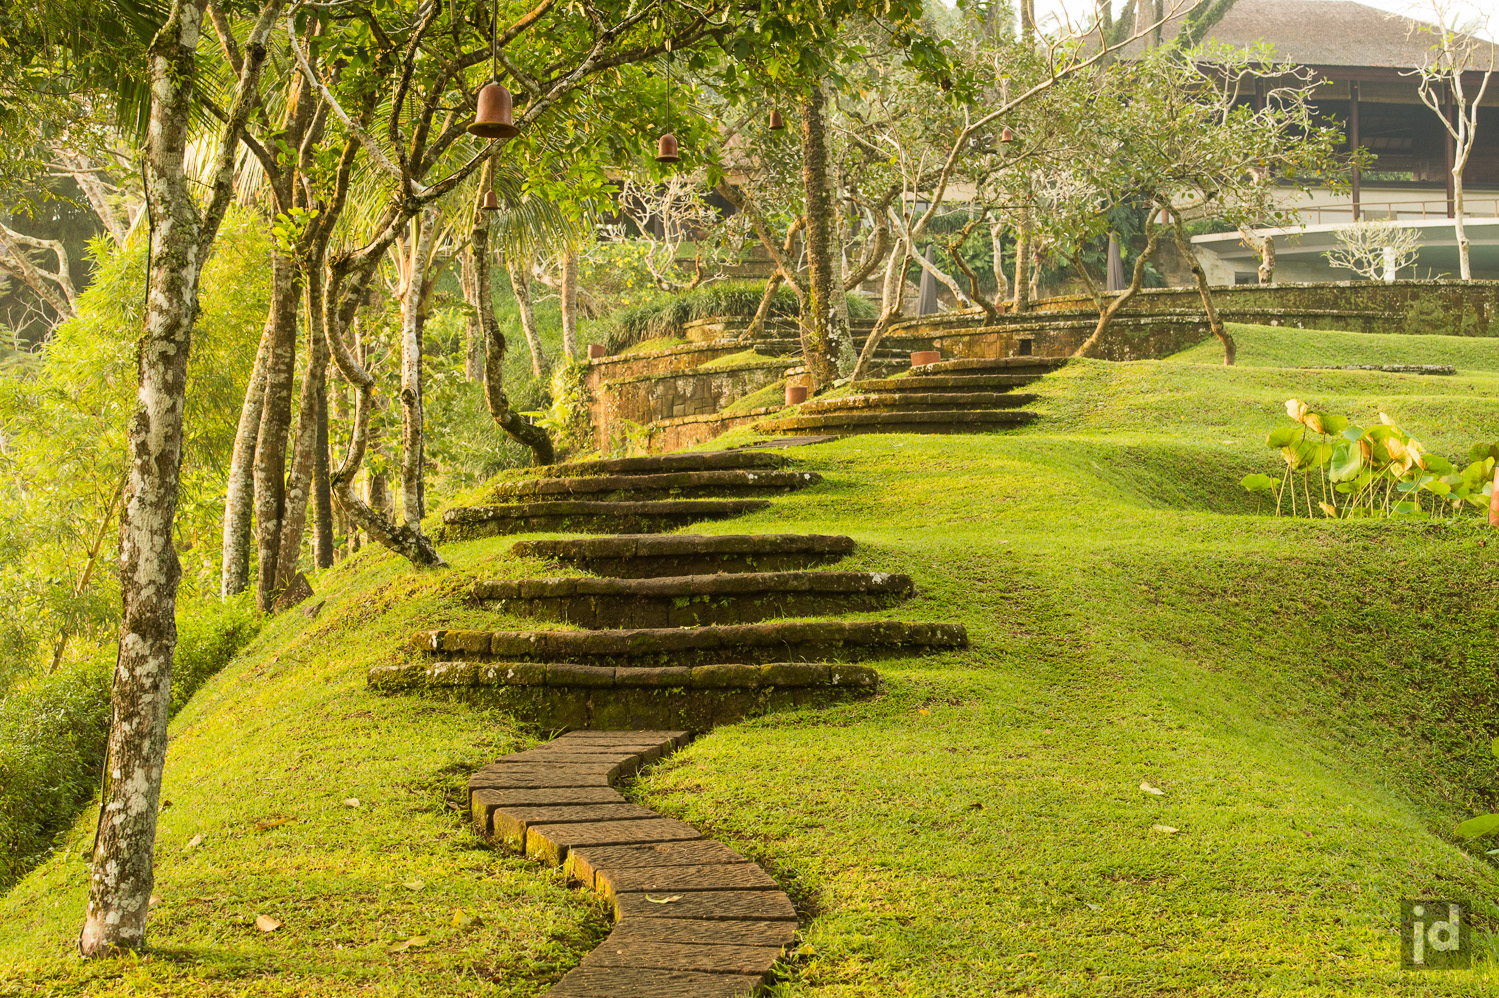 Bali_Indonesia_Photography_Jason_Davis_Images_031.jpg